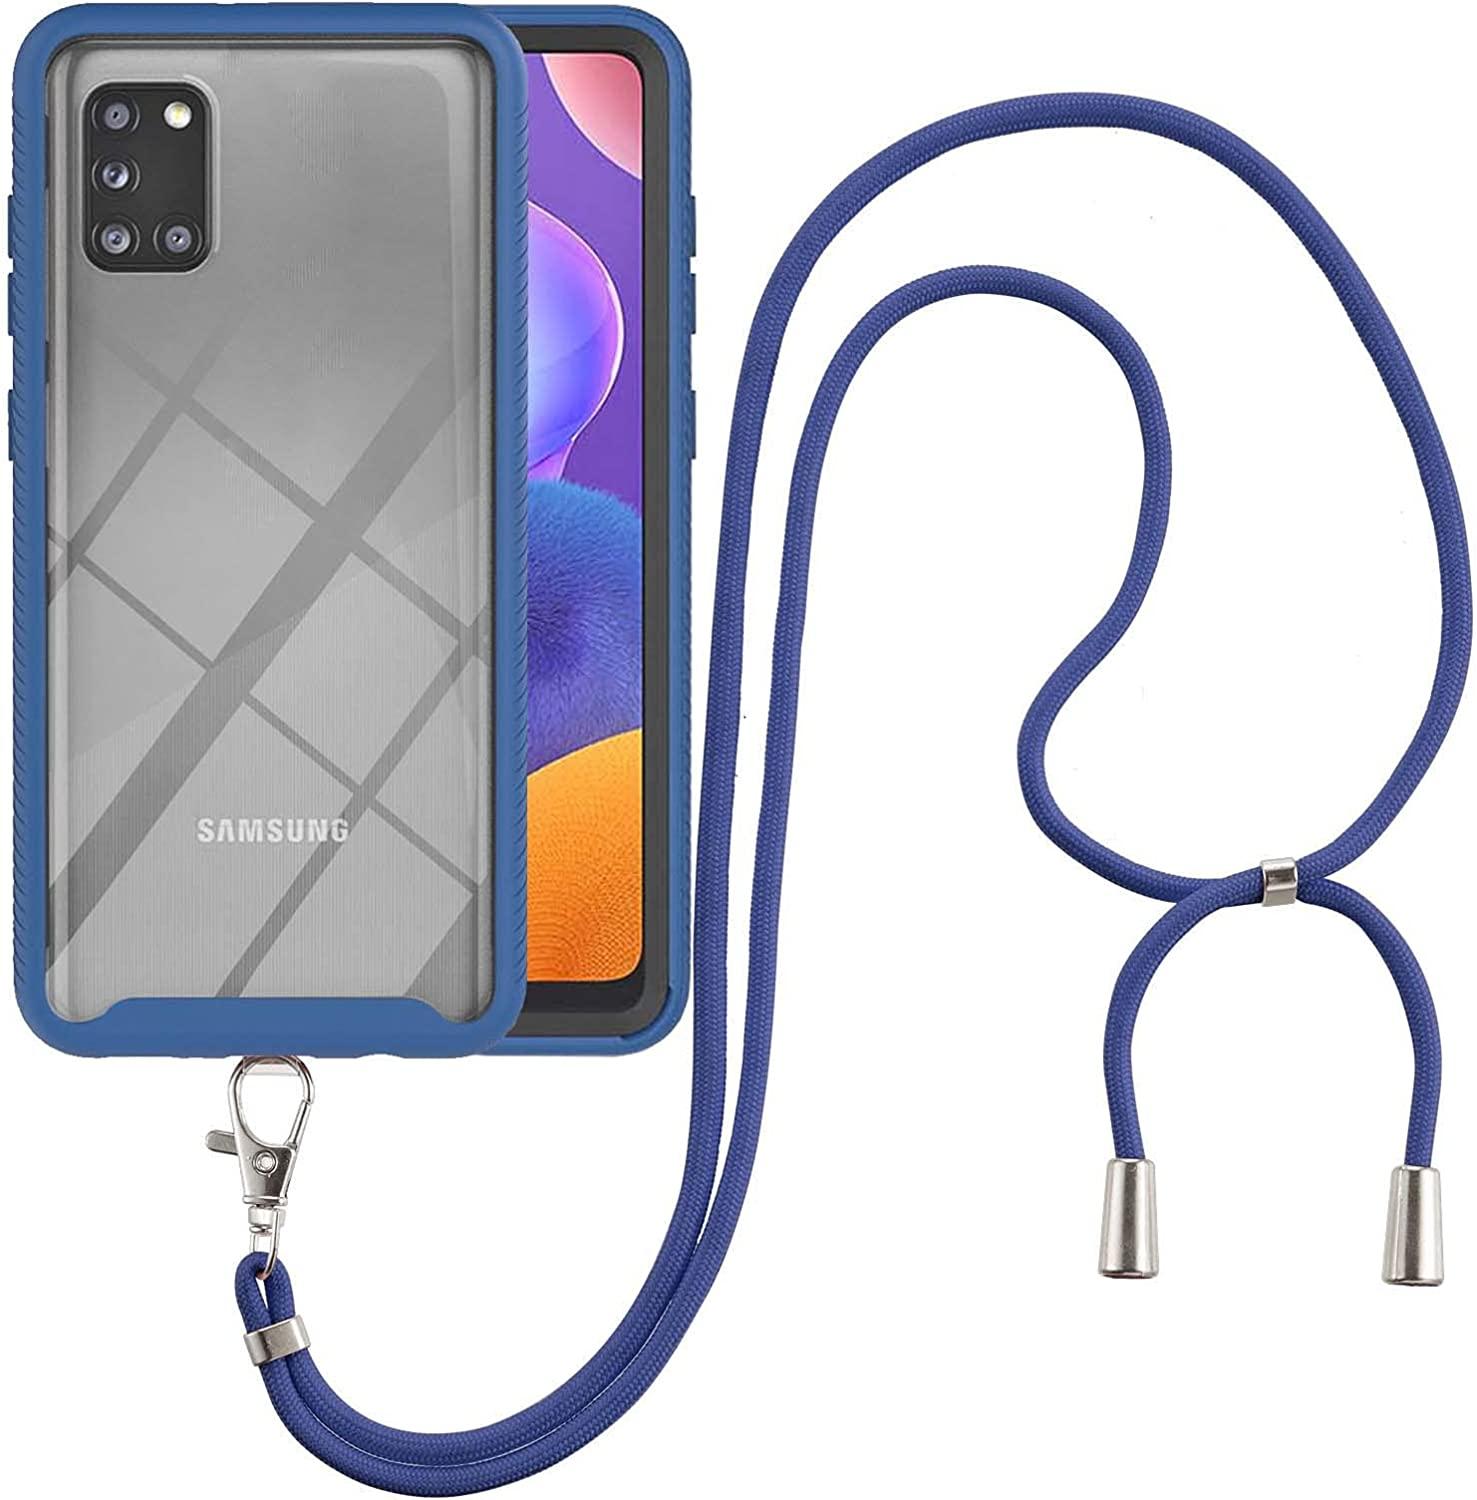 Samsung A31 Case, EabHulie Transparent Back No-Slip Bumper with Adjustable Crossbody Lanyard Strap Case, Shockproof Full Body Protection Cover for Samsung Galaxy A31 Blue